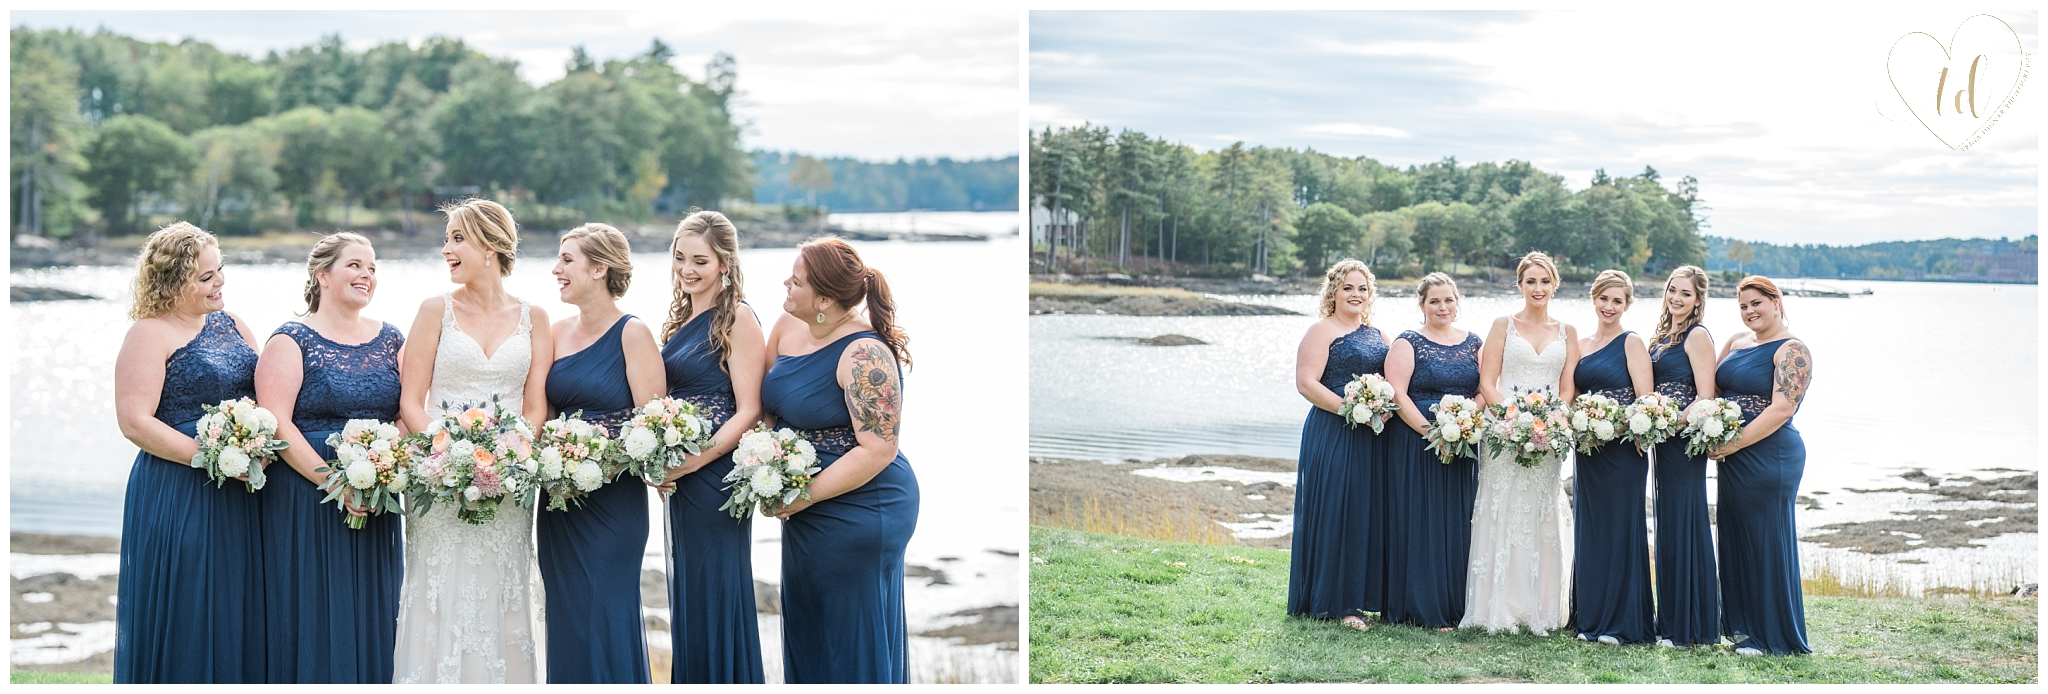 Edgecomb Maine Wedding Photography